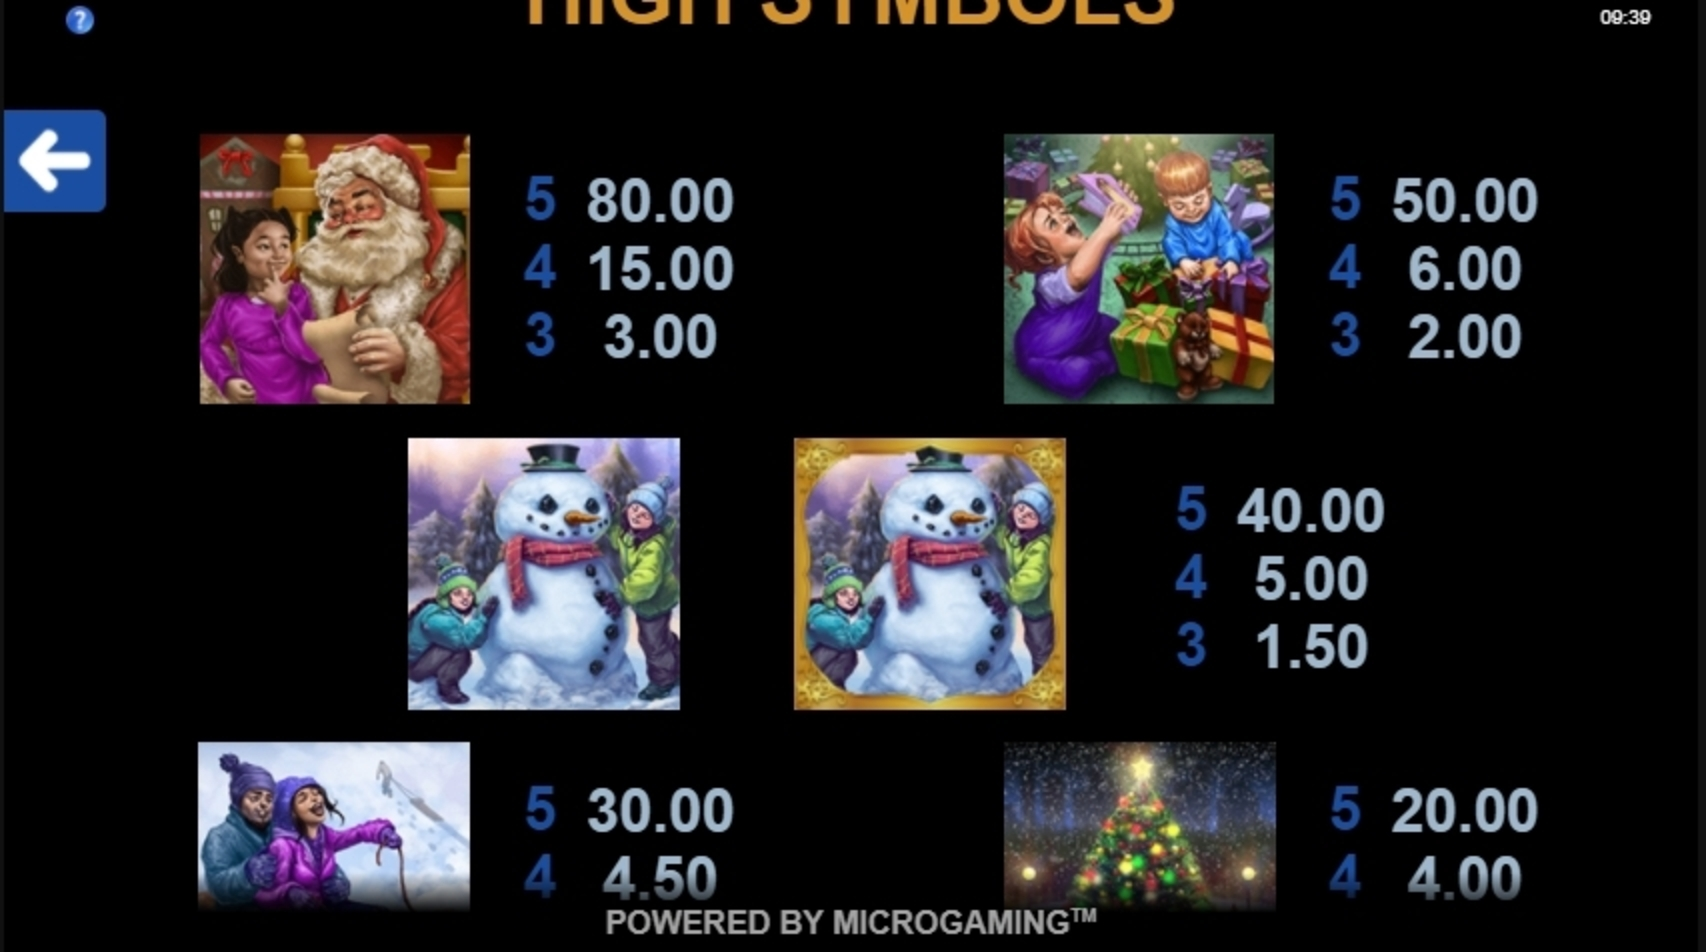 Info of Happy Holidays Slot Game by Microgaming